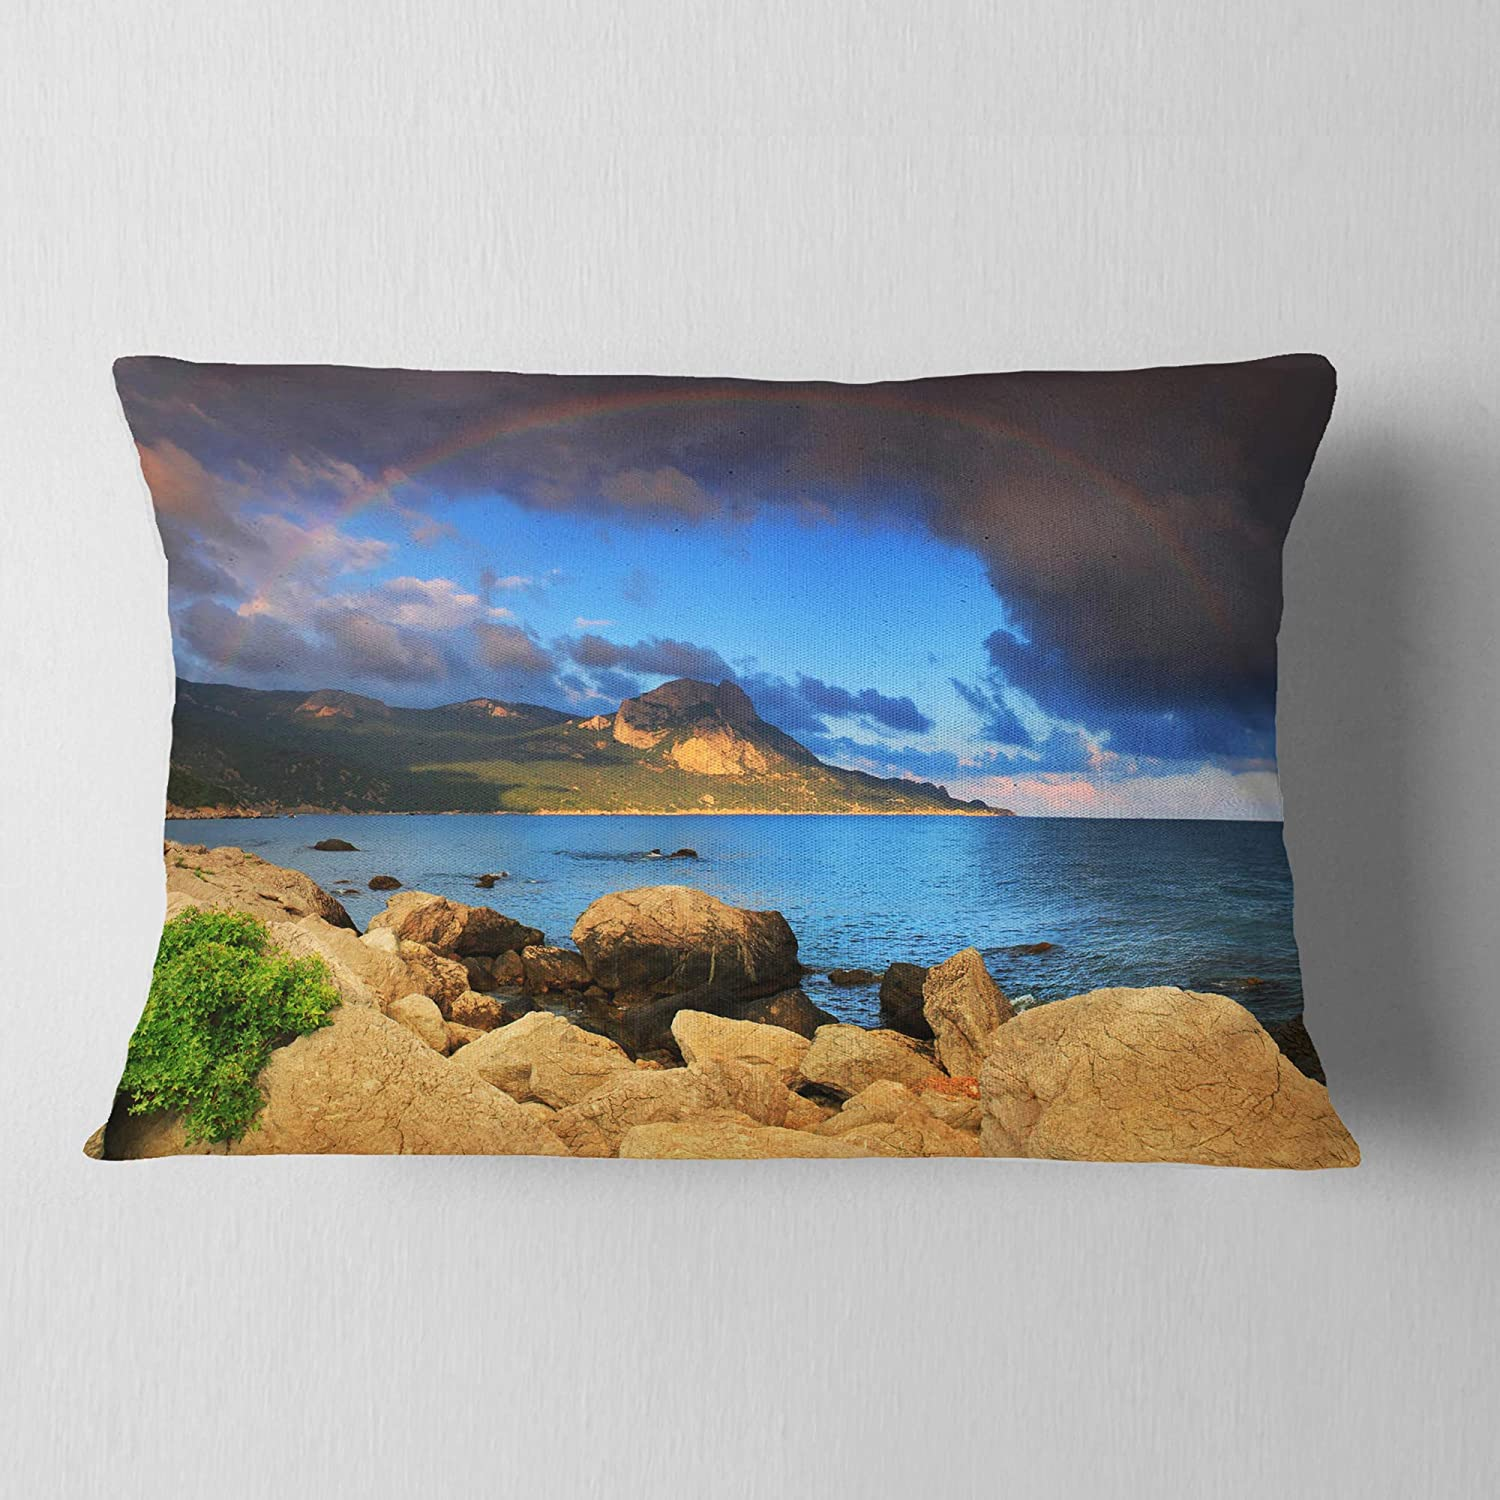 Designart CU11532-12-20 Rainbow Over The Ocean Bay Modern Seascape Lumbar Cushion Cover for Living Room Sofa Throw Pillow 12 in in x 20 in